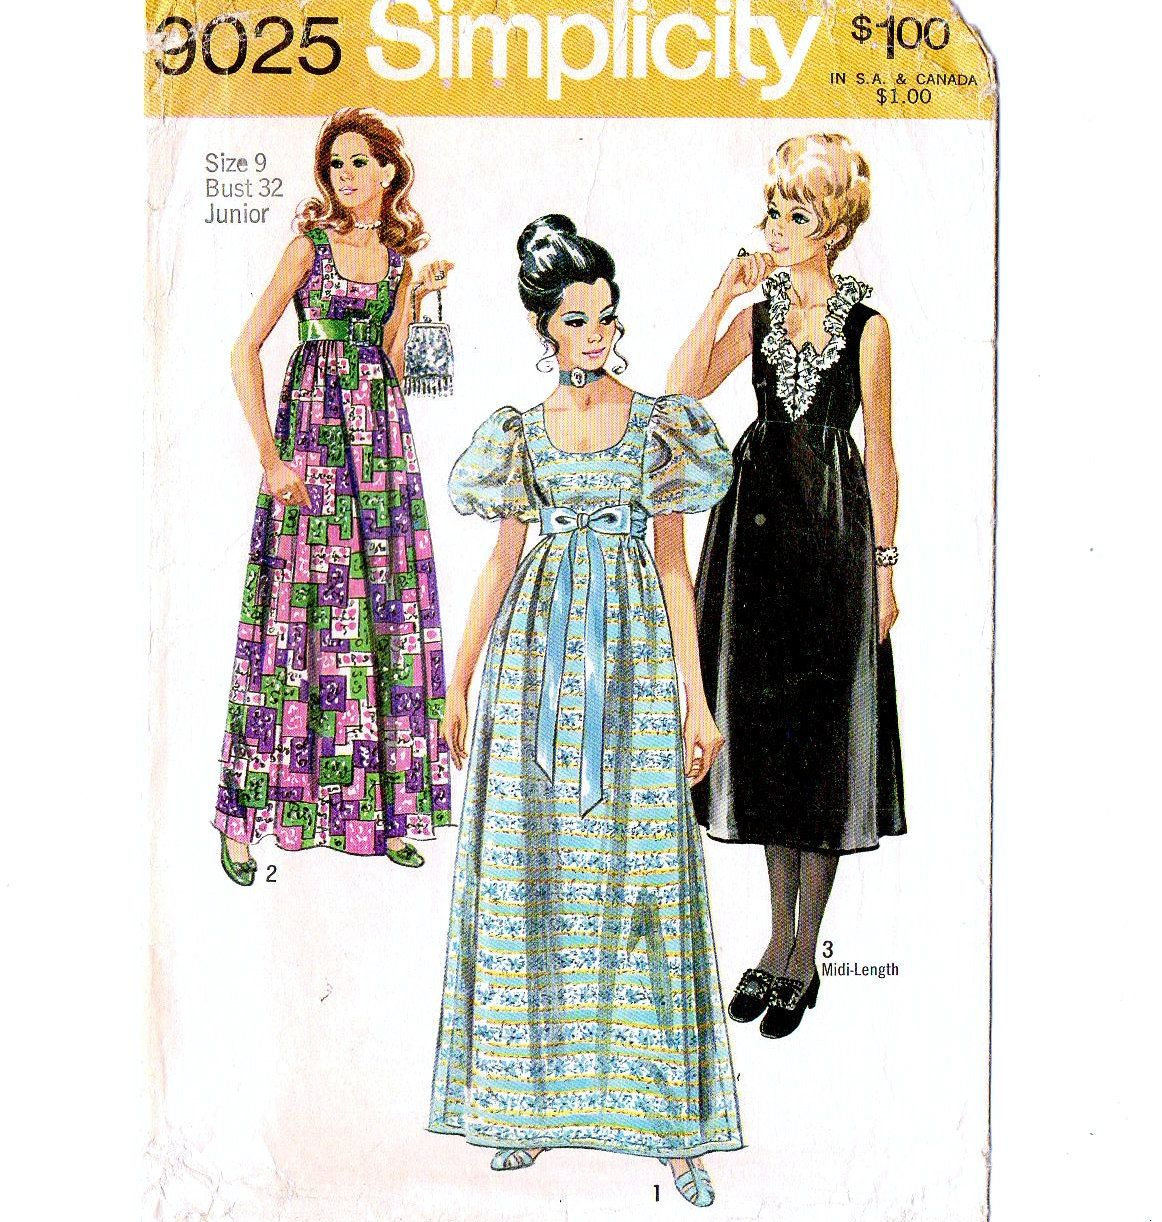 Simplicity 9025 Miss Evening Dress 70s Vintage Sewing Pattern Size 9 Bust 32 Prom Gown High Evening Dress Patterns Simplicity Patterns Dresses Vintage Dresses